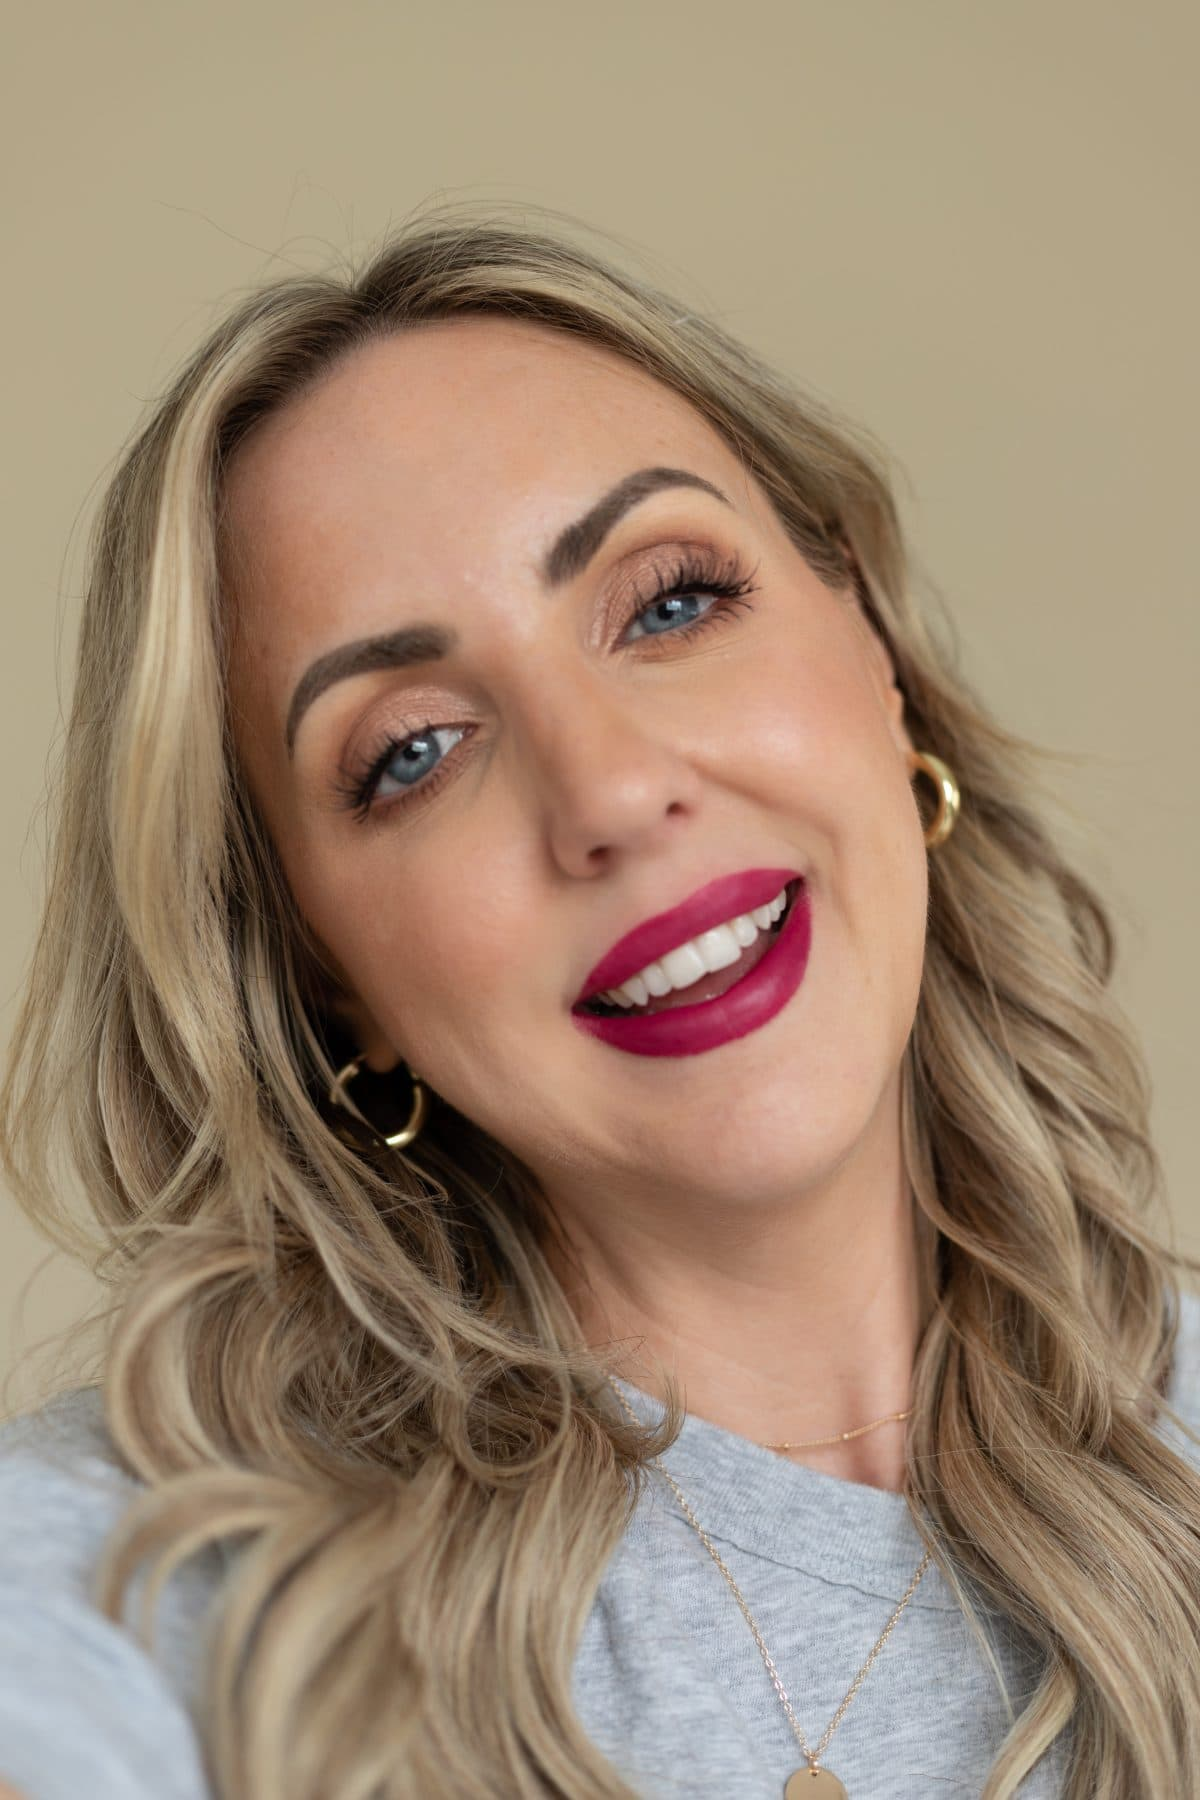 Digital influencer Meg O. shares the best drugstore lipsticks for fall - Maybelline SuperStay Ink Crayon in Accept a Dare